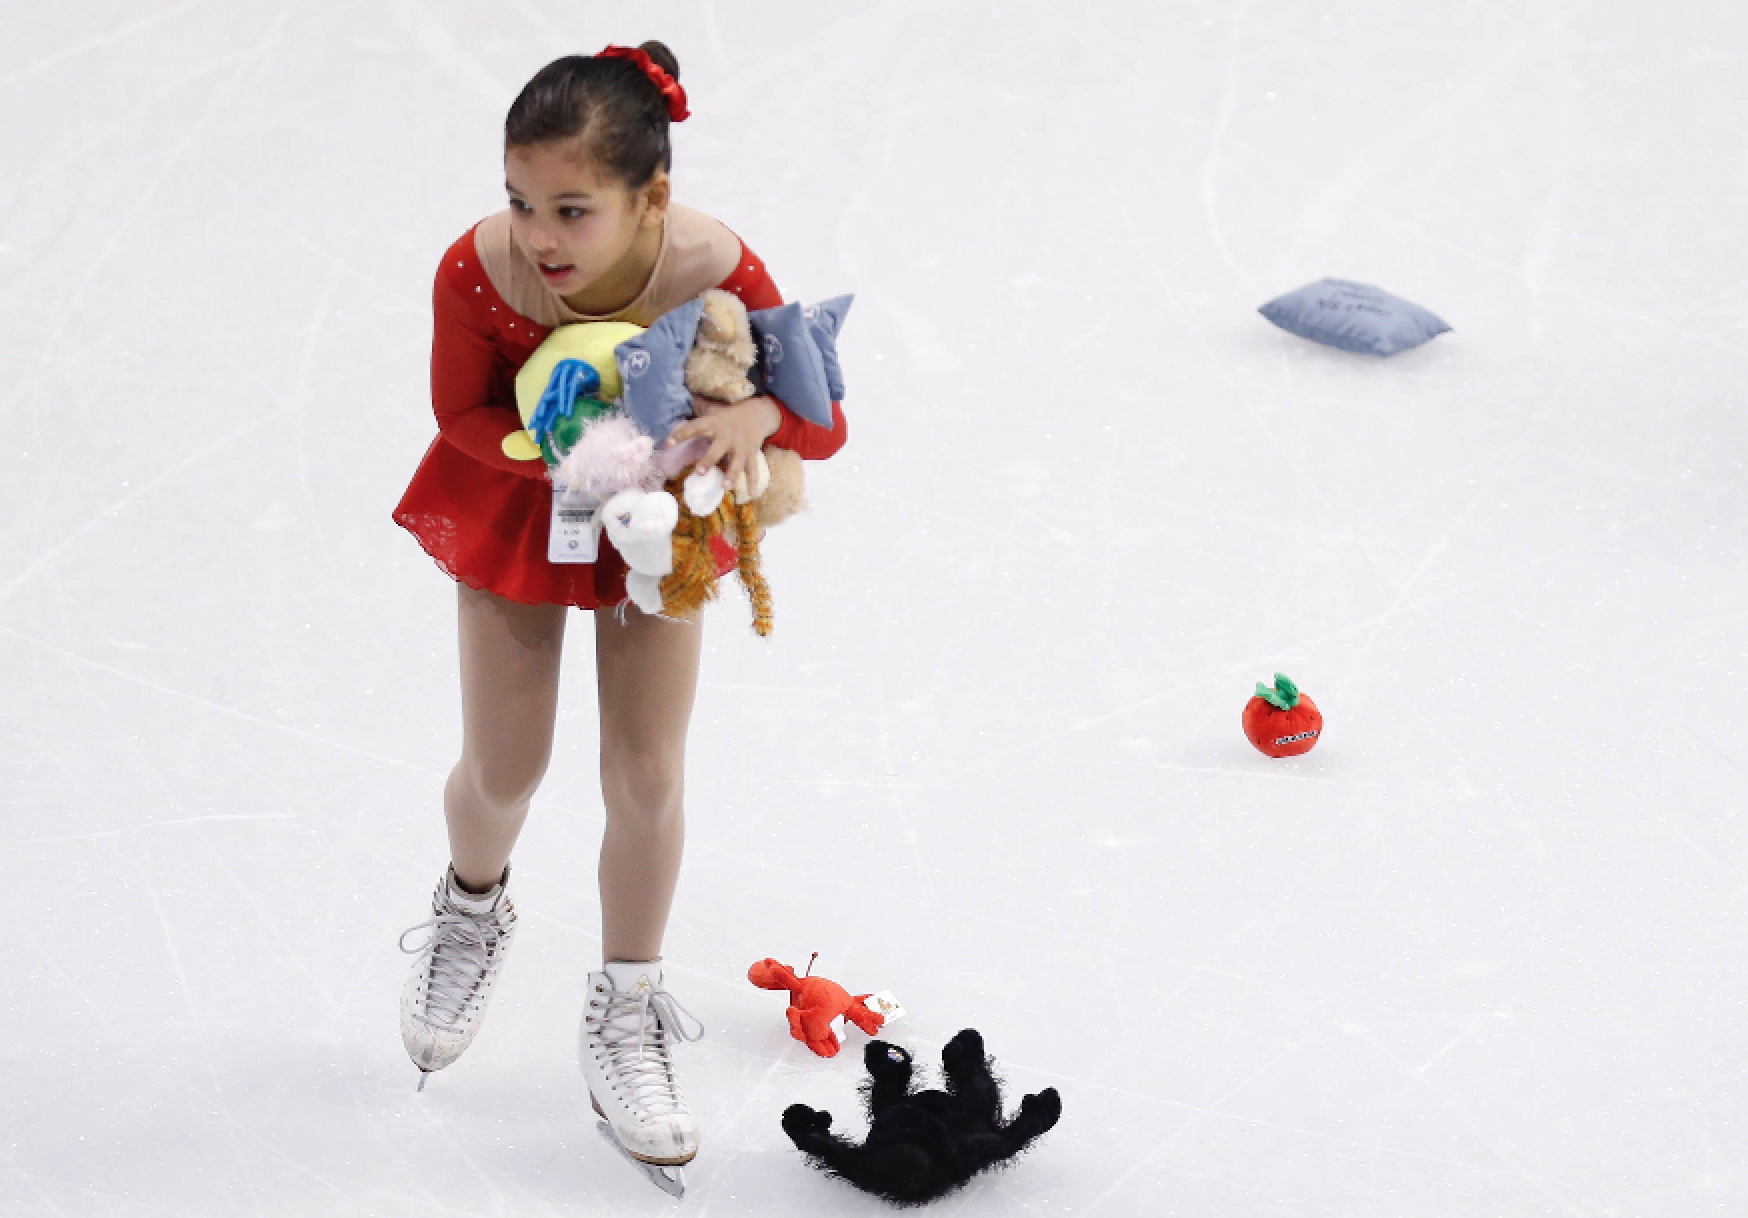 What do figure skaters do with all those stuffed a...